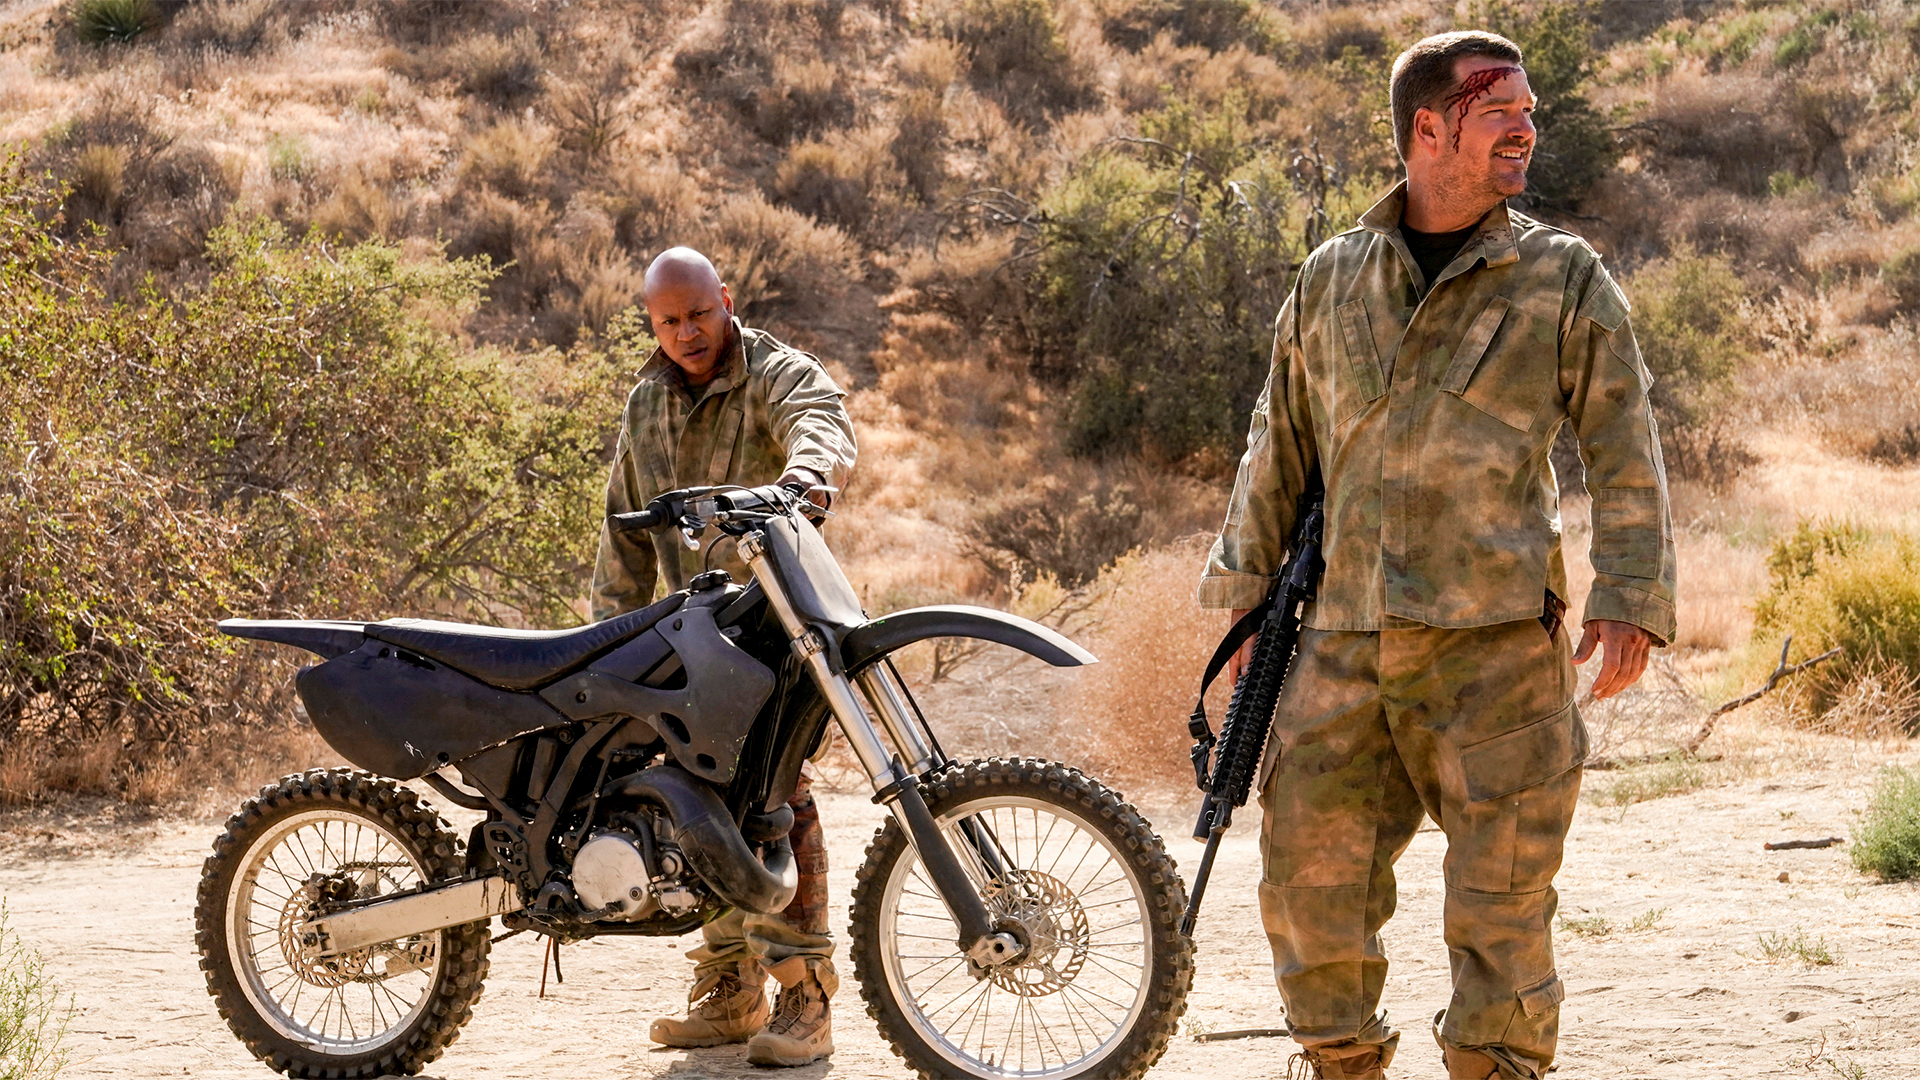 Watch NCIS: Los Angeles Season 10 Episode 1: To Live and Die in Mexico -  Full show on CBS All Access